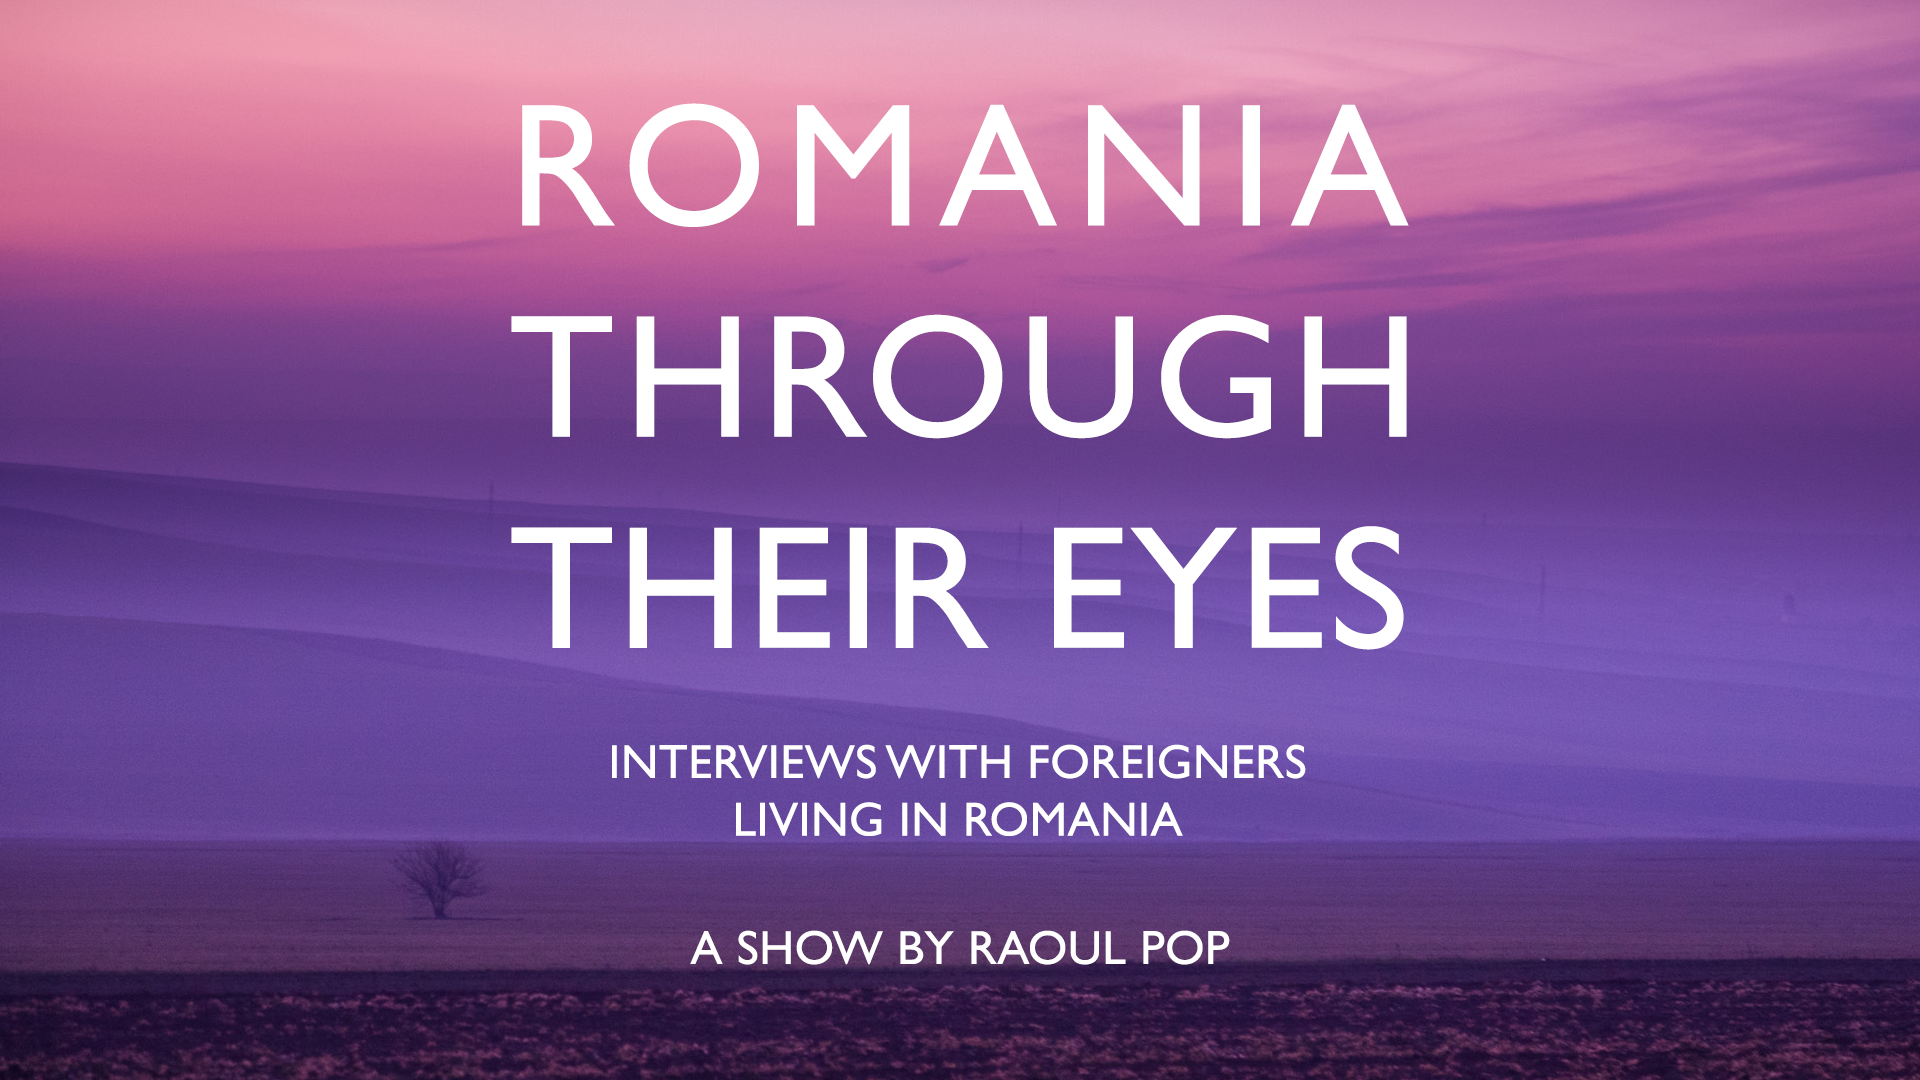 Romania Through Their Eyes